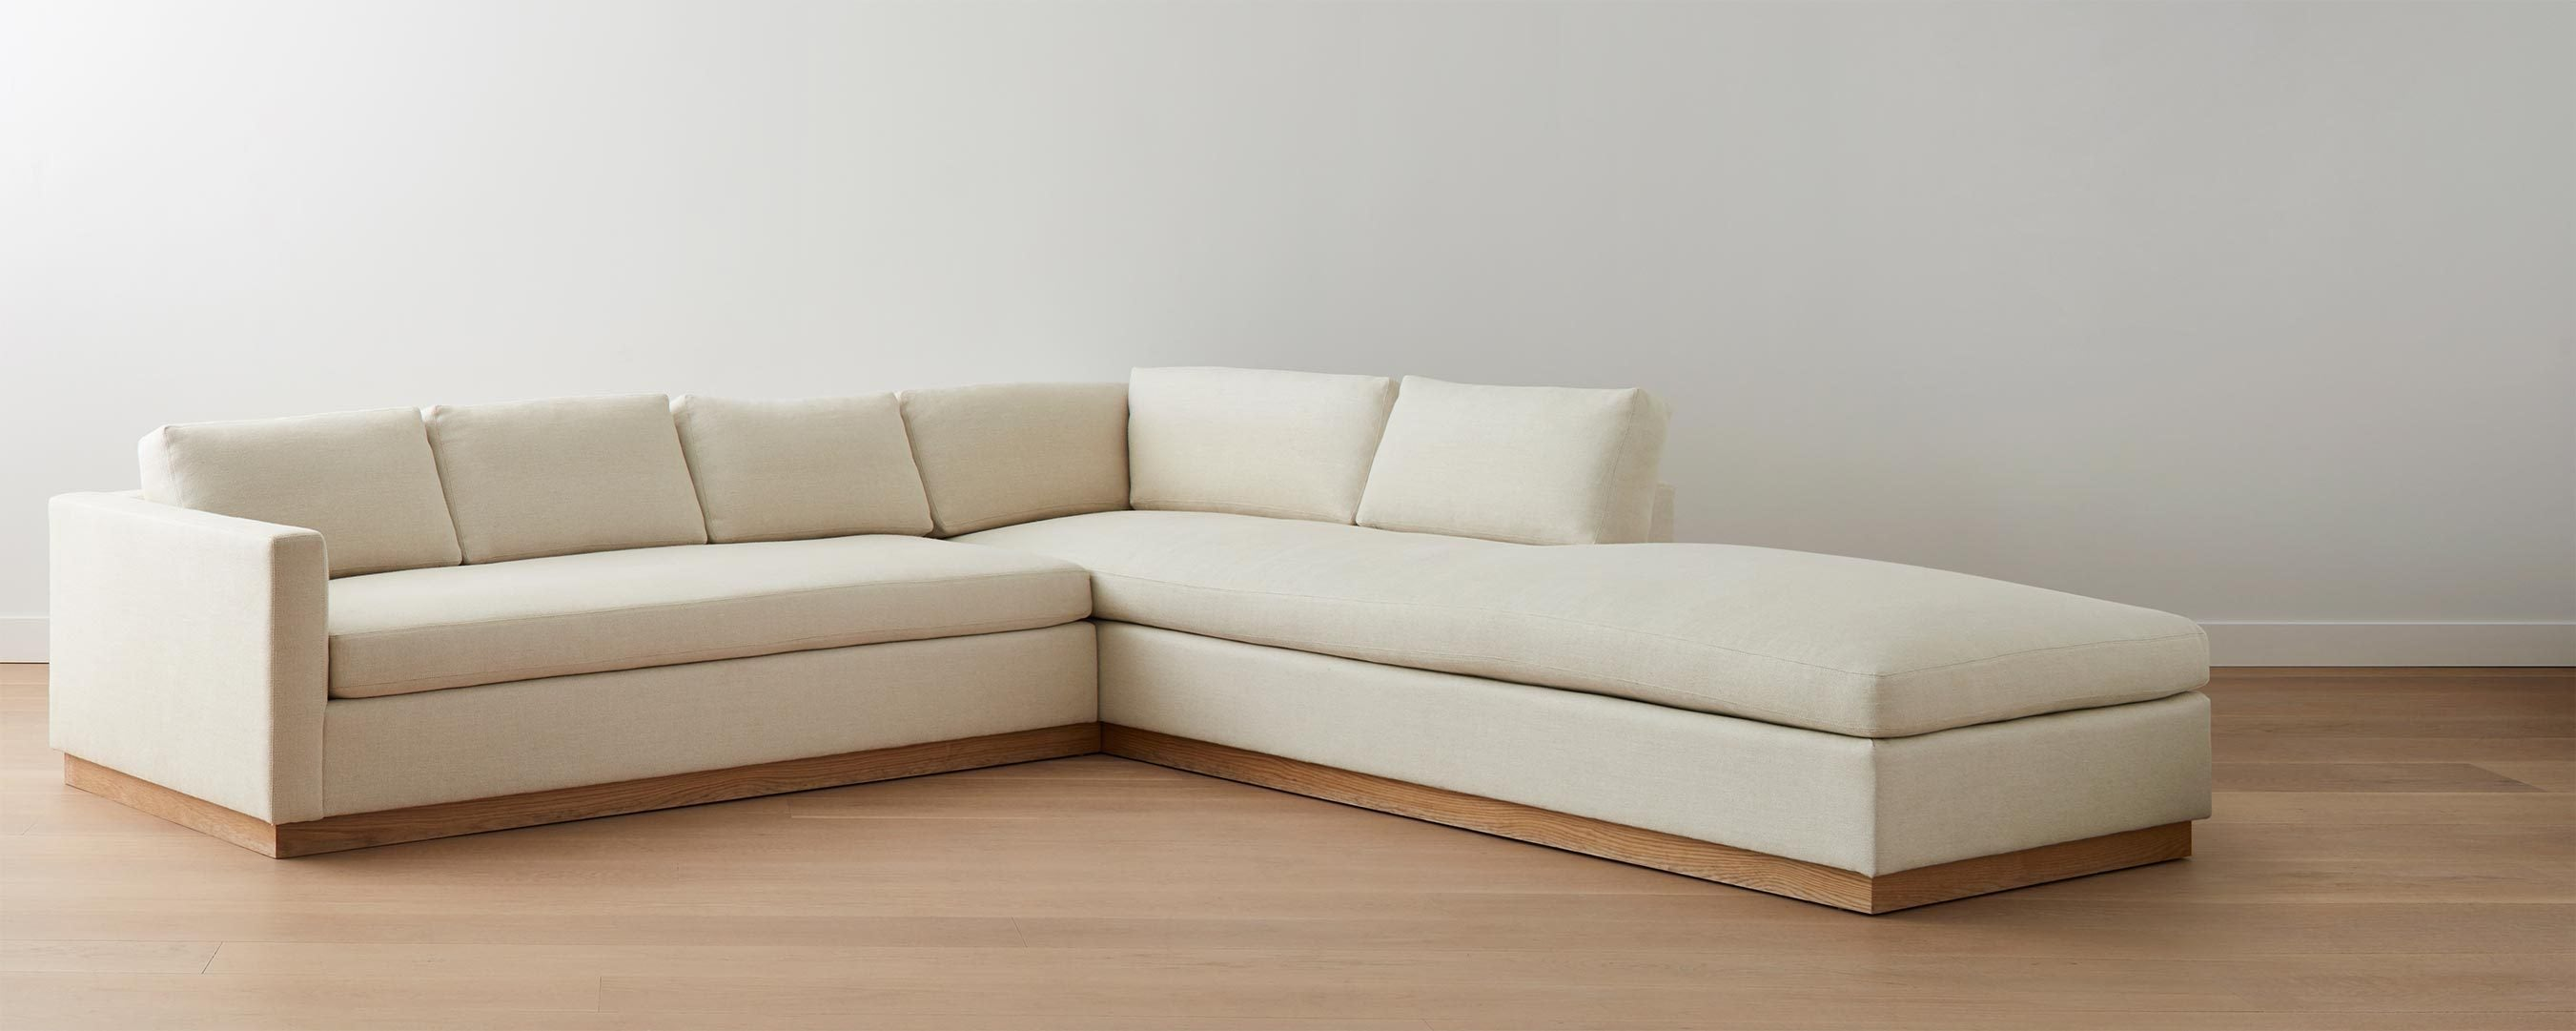 the homenature halsey sectional